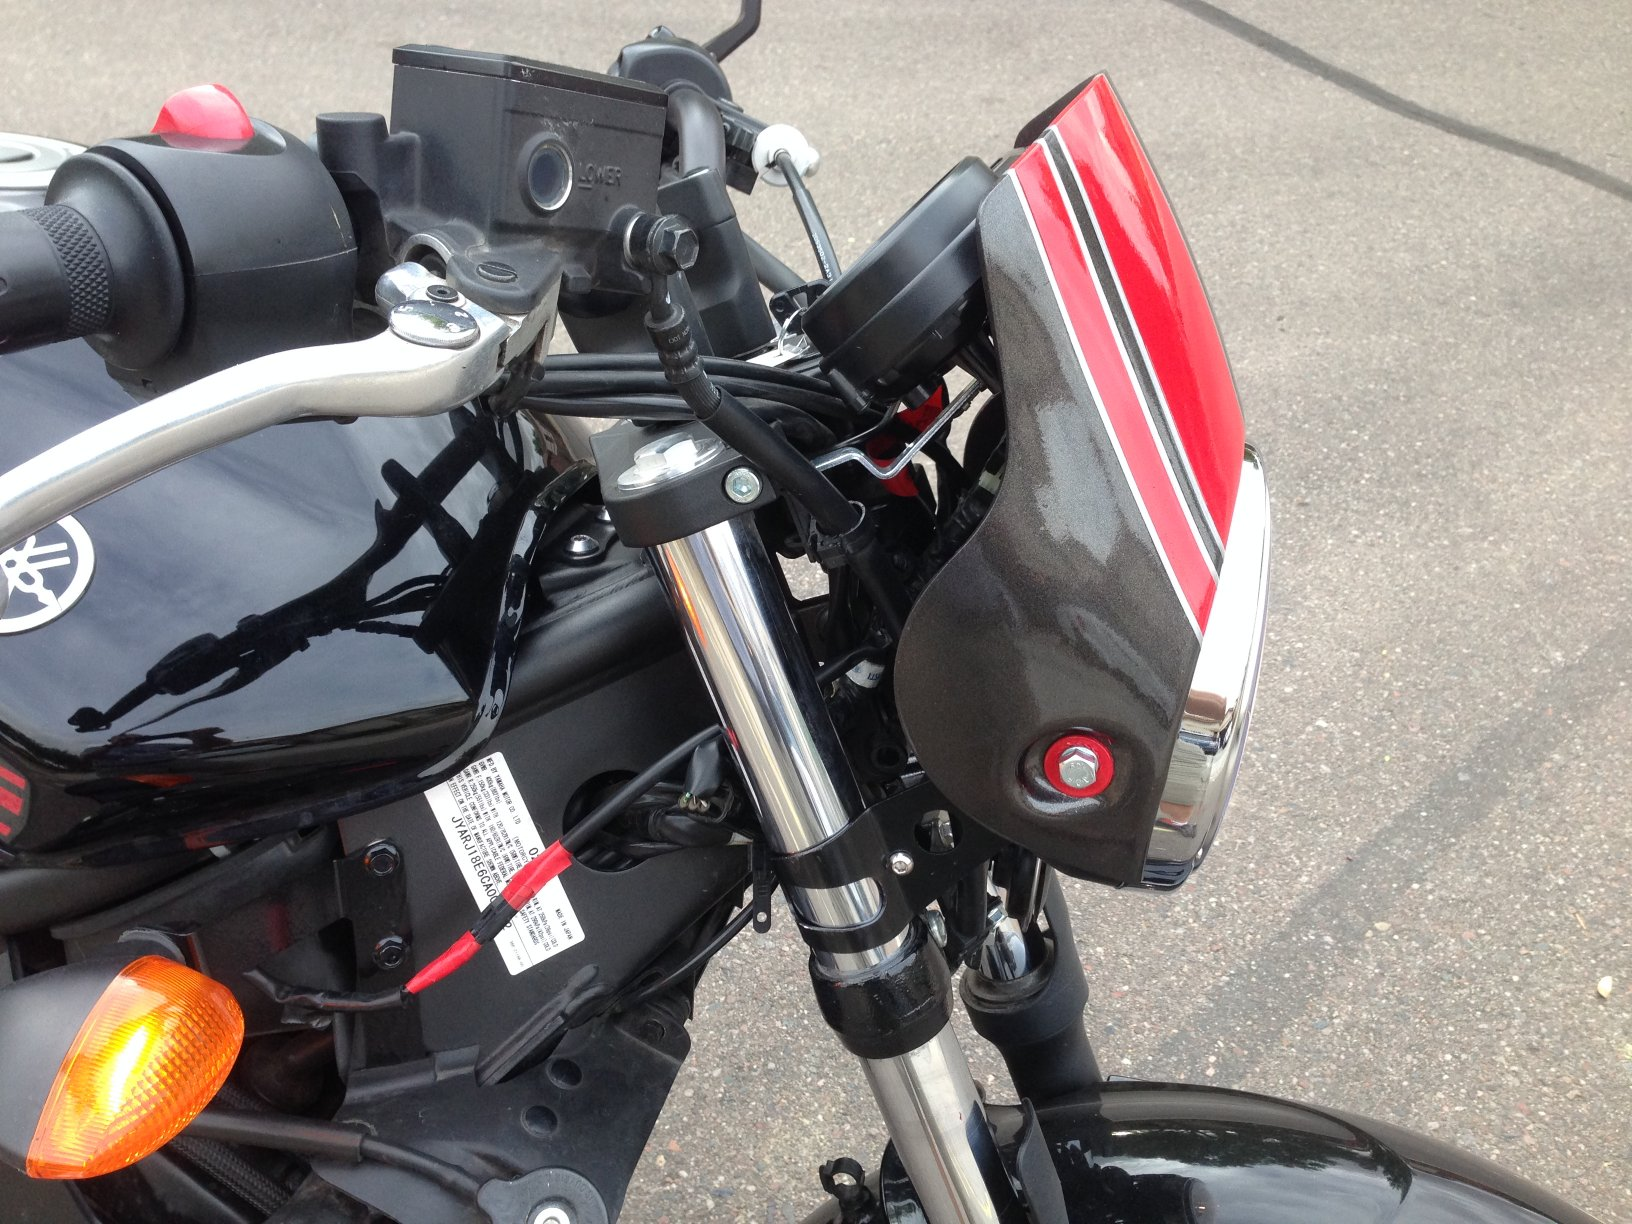 FZ6R Streetfighter Mod Completed